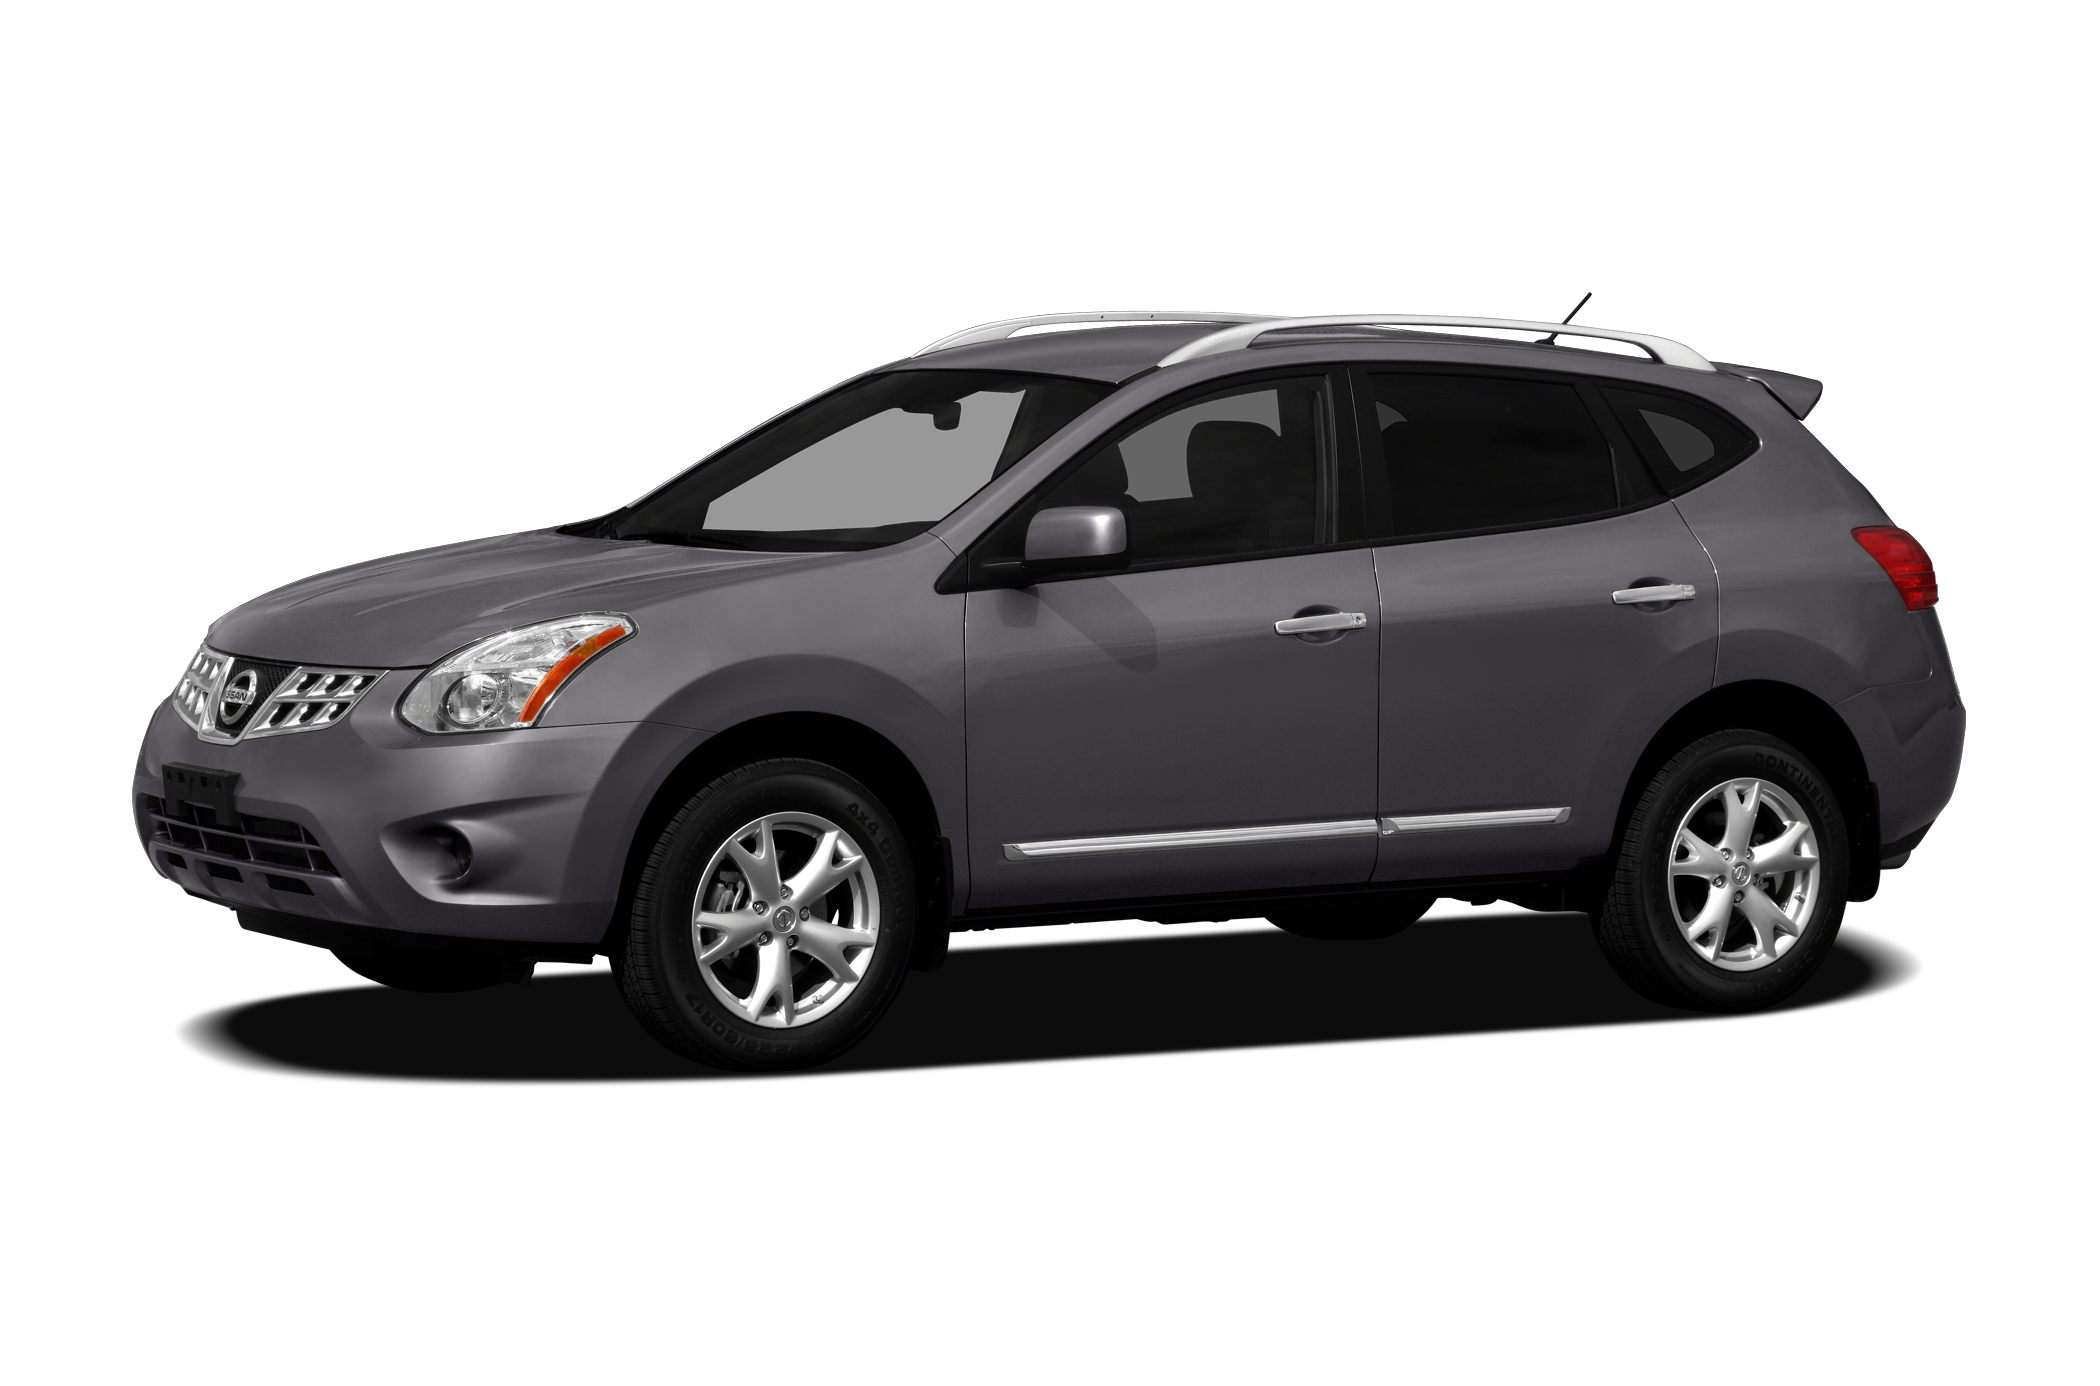 2012 Nissan Rogue SV Proudly serving manatee county for over 60 years offering Cars Trucks SUVs